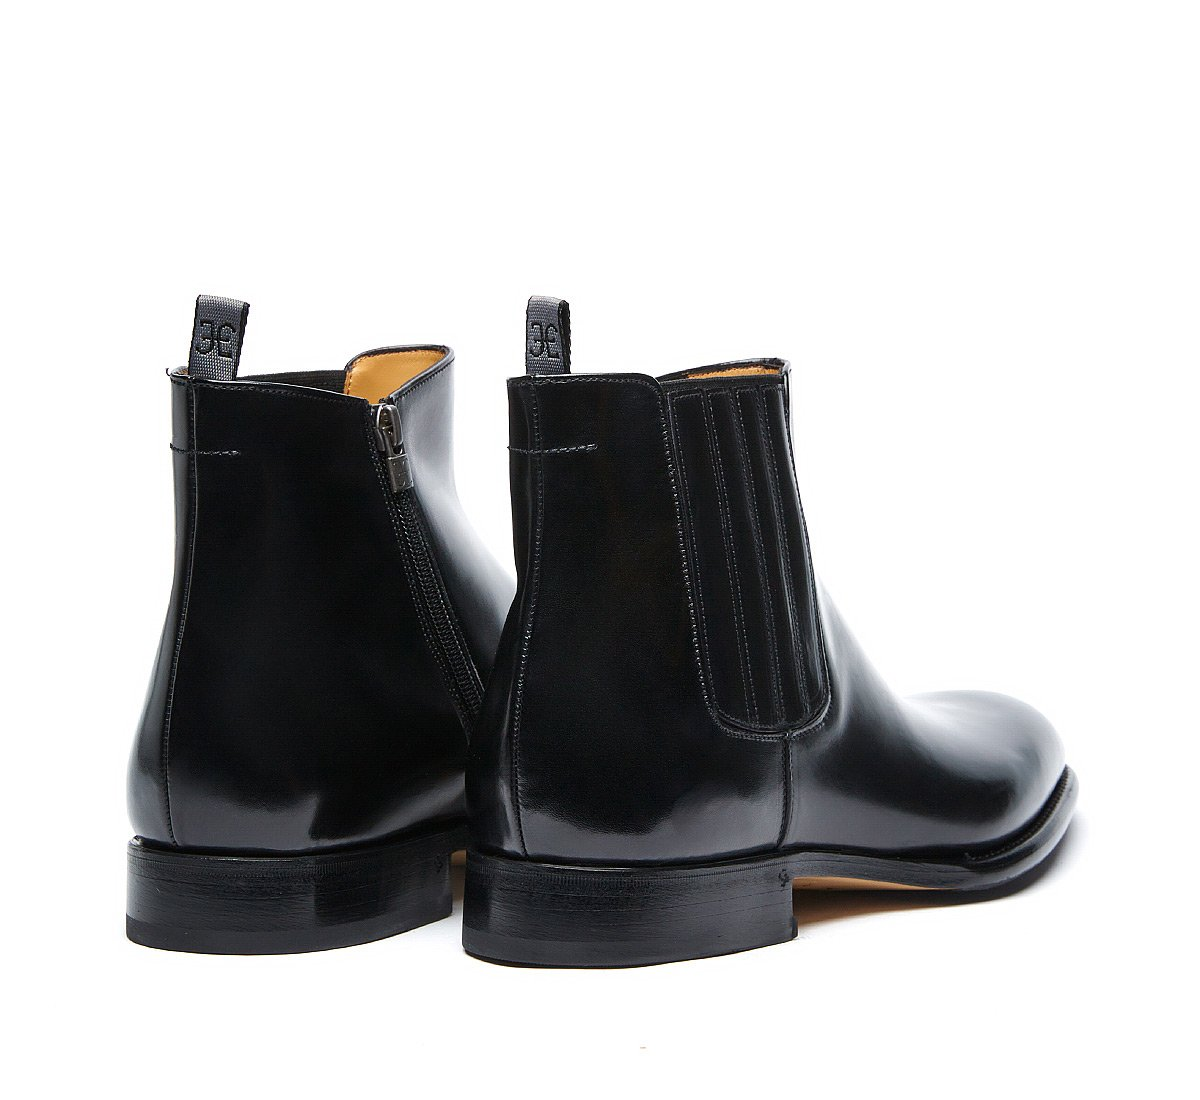 Fabi Flex Goodyear Beatle boots in luxury calf leather